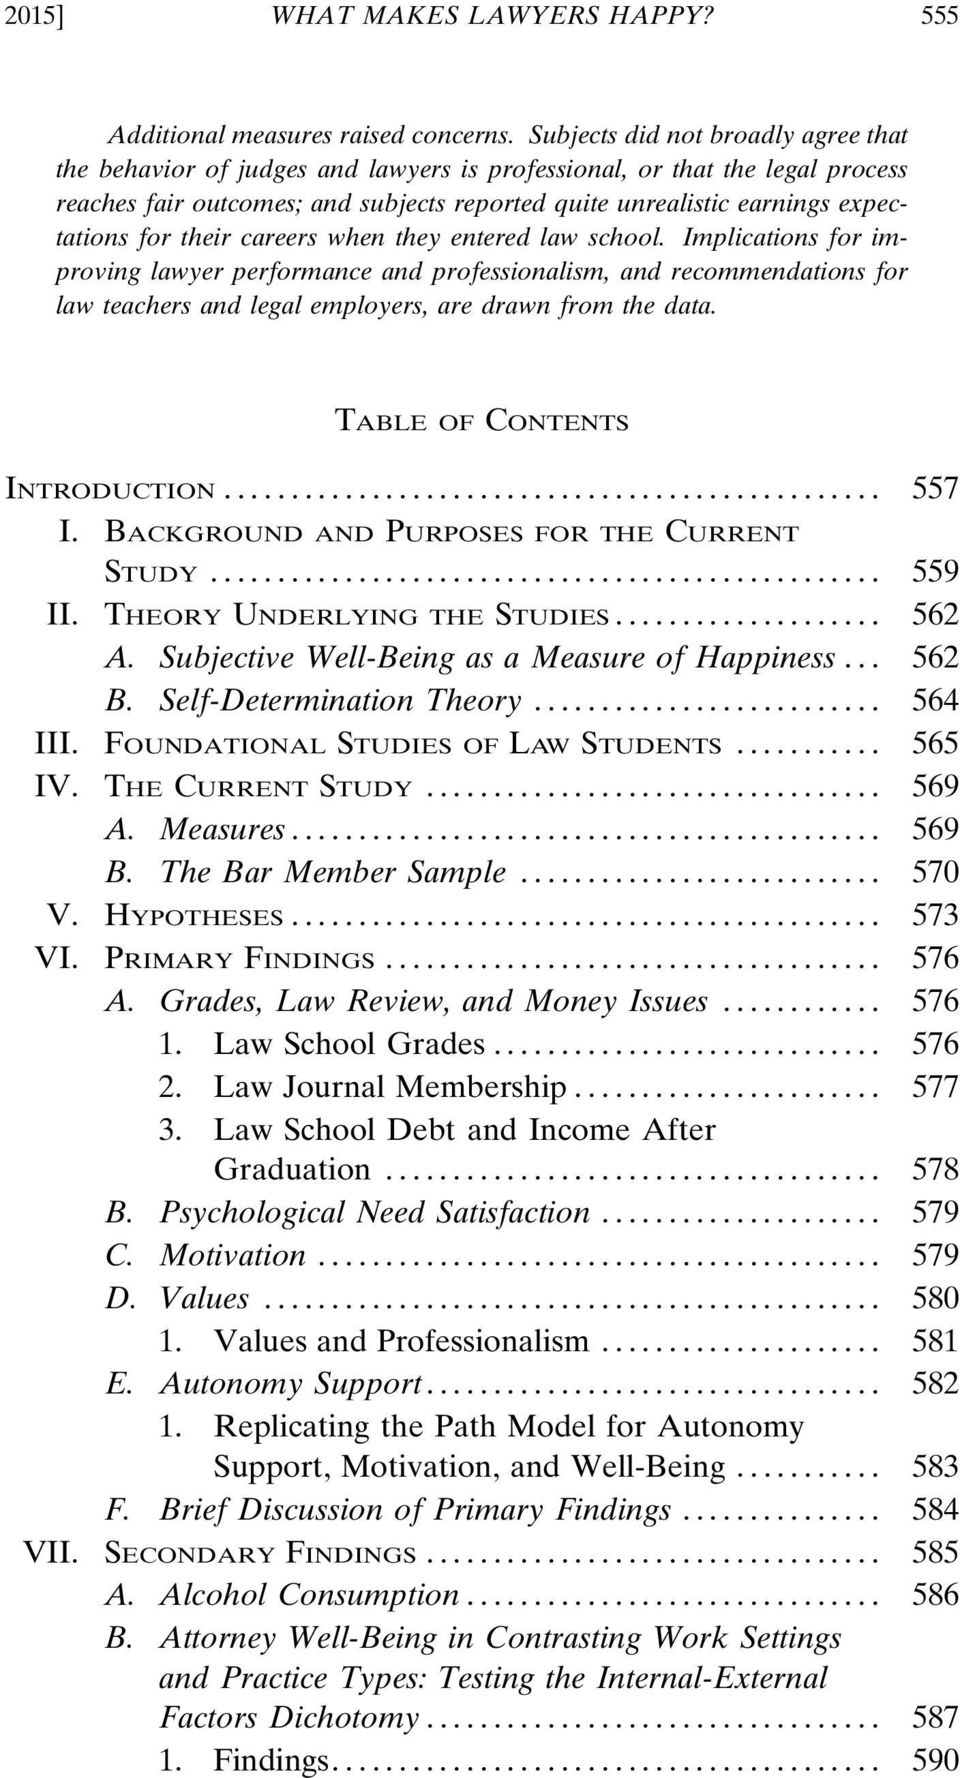 for their careers when they entered law school. Implications for improving lawyer performance and professionalism, and recommendations for law teachers and legal employers, are drawn from the data.